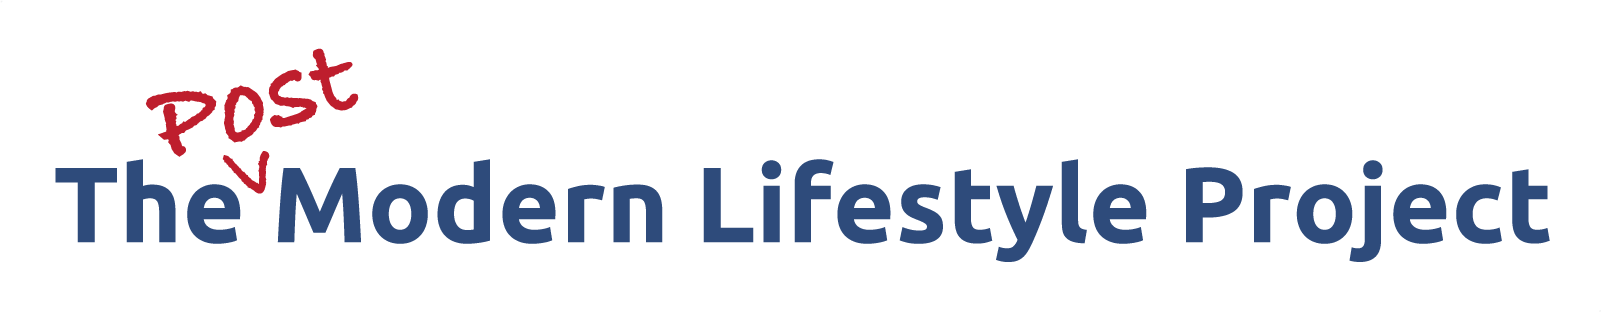 Post-Modern Lifestyle Project Banner